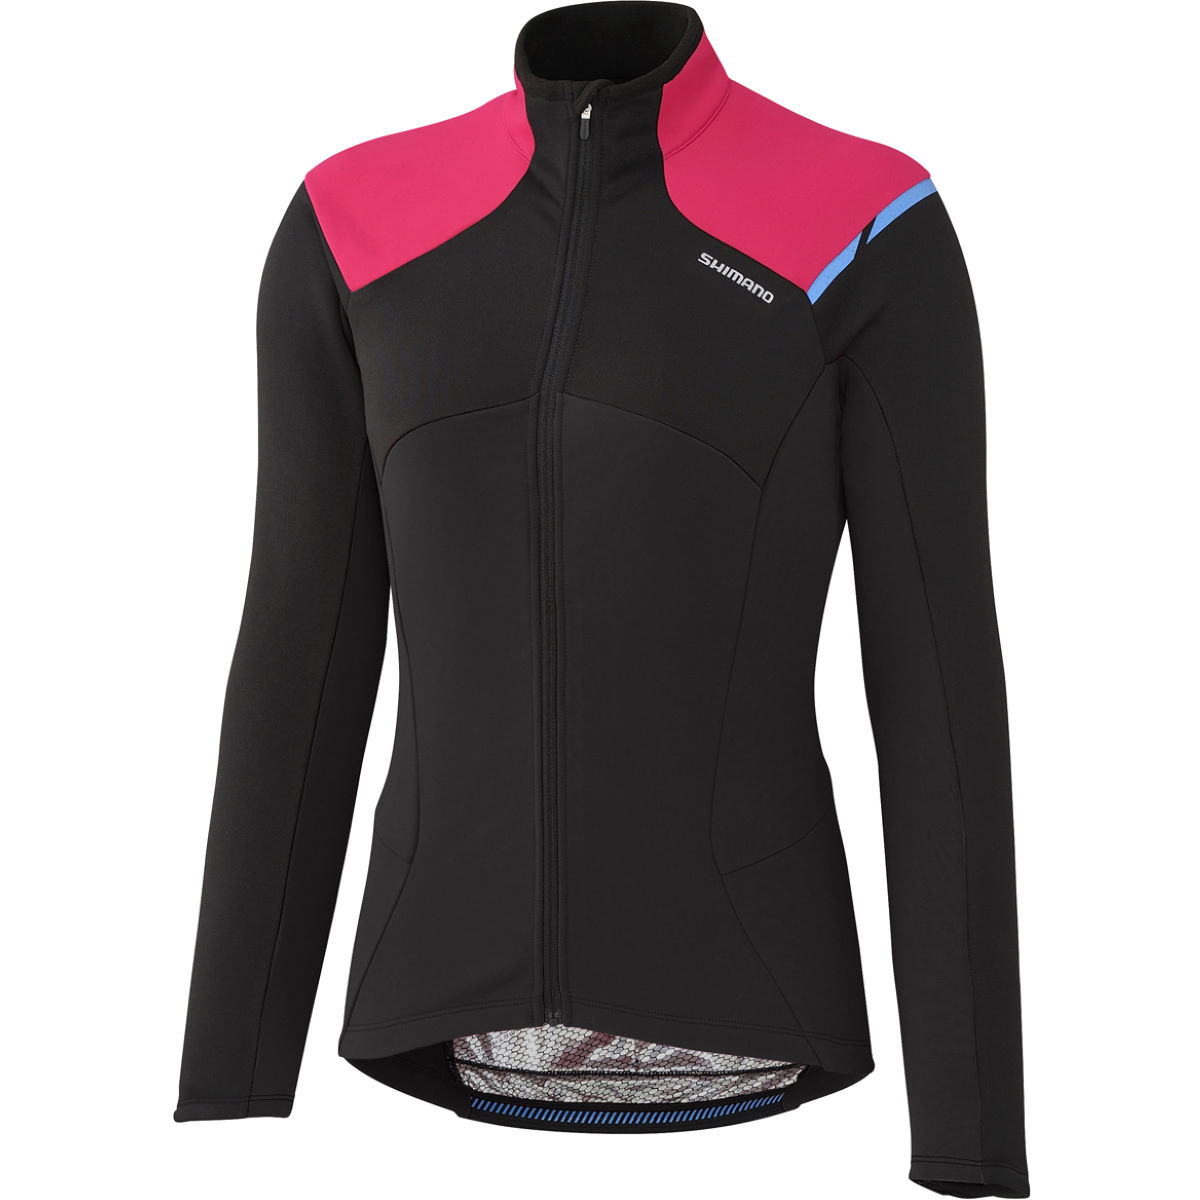 Veste Femme Shimano Performance Windbreak - Extra Large Noir Vestes